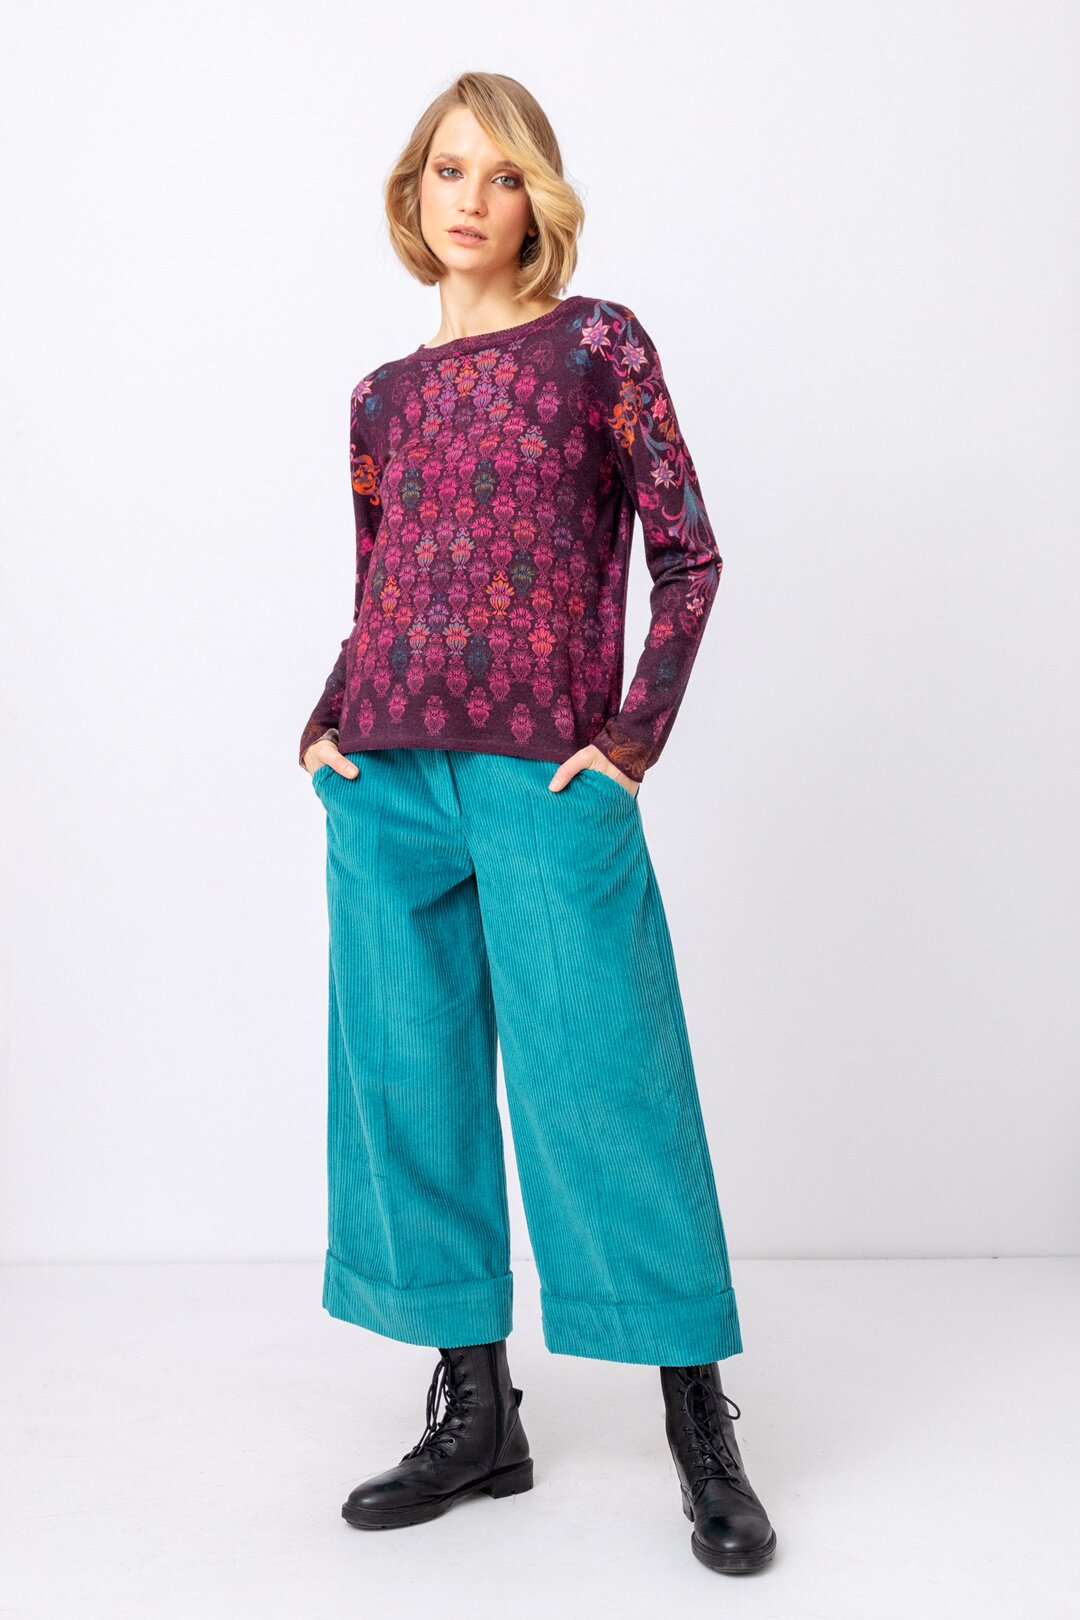 outfit-7c8a2258